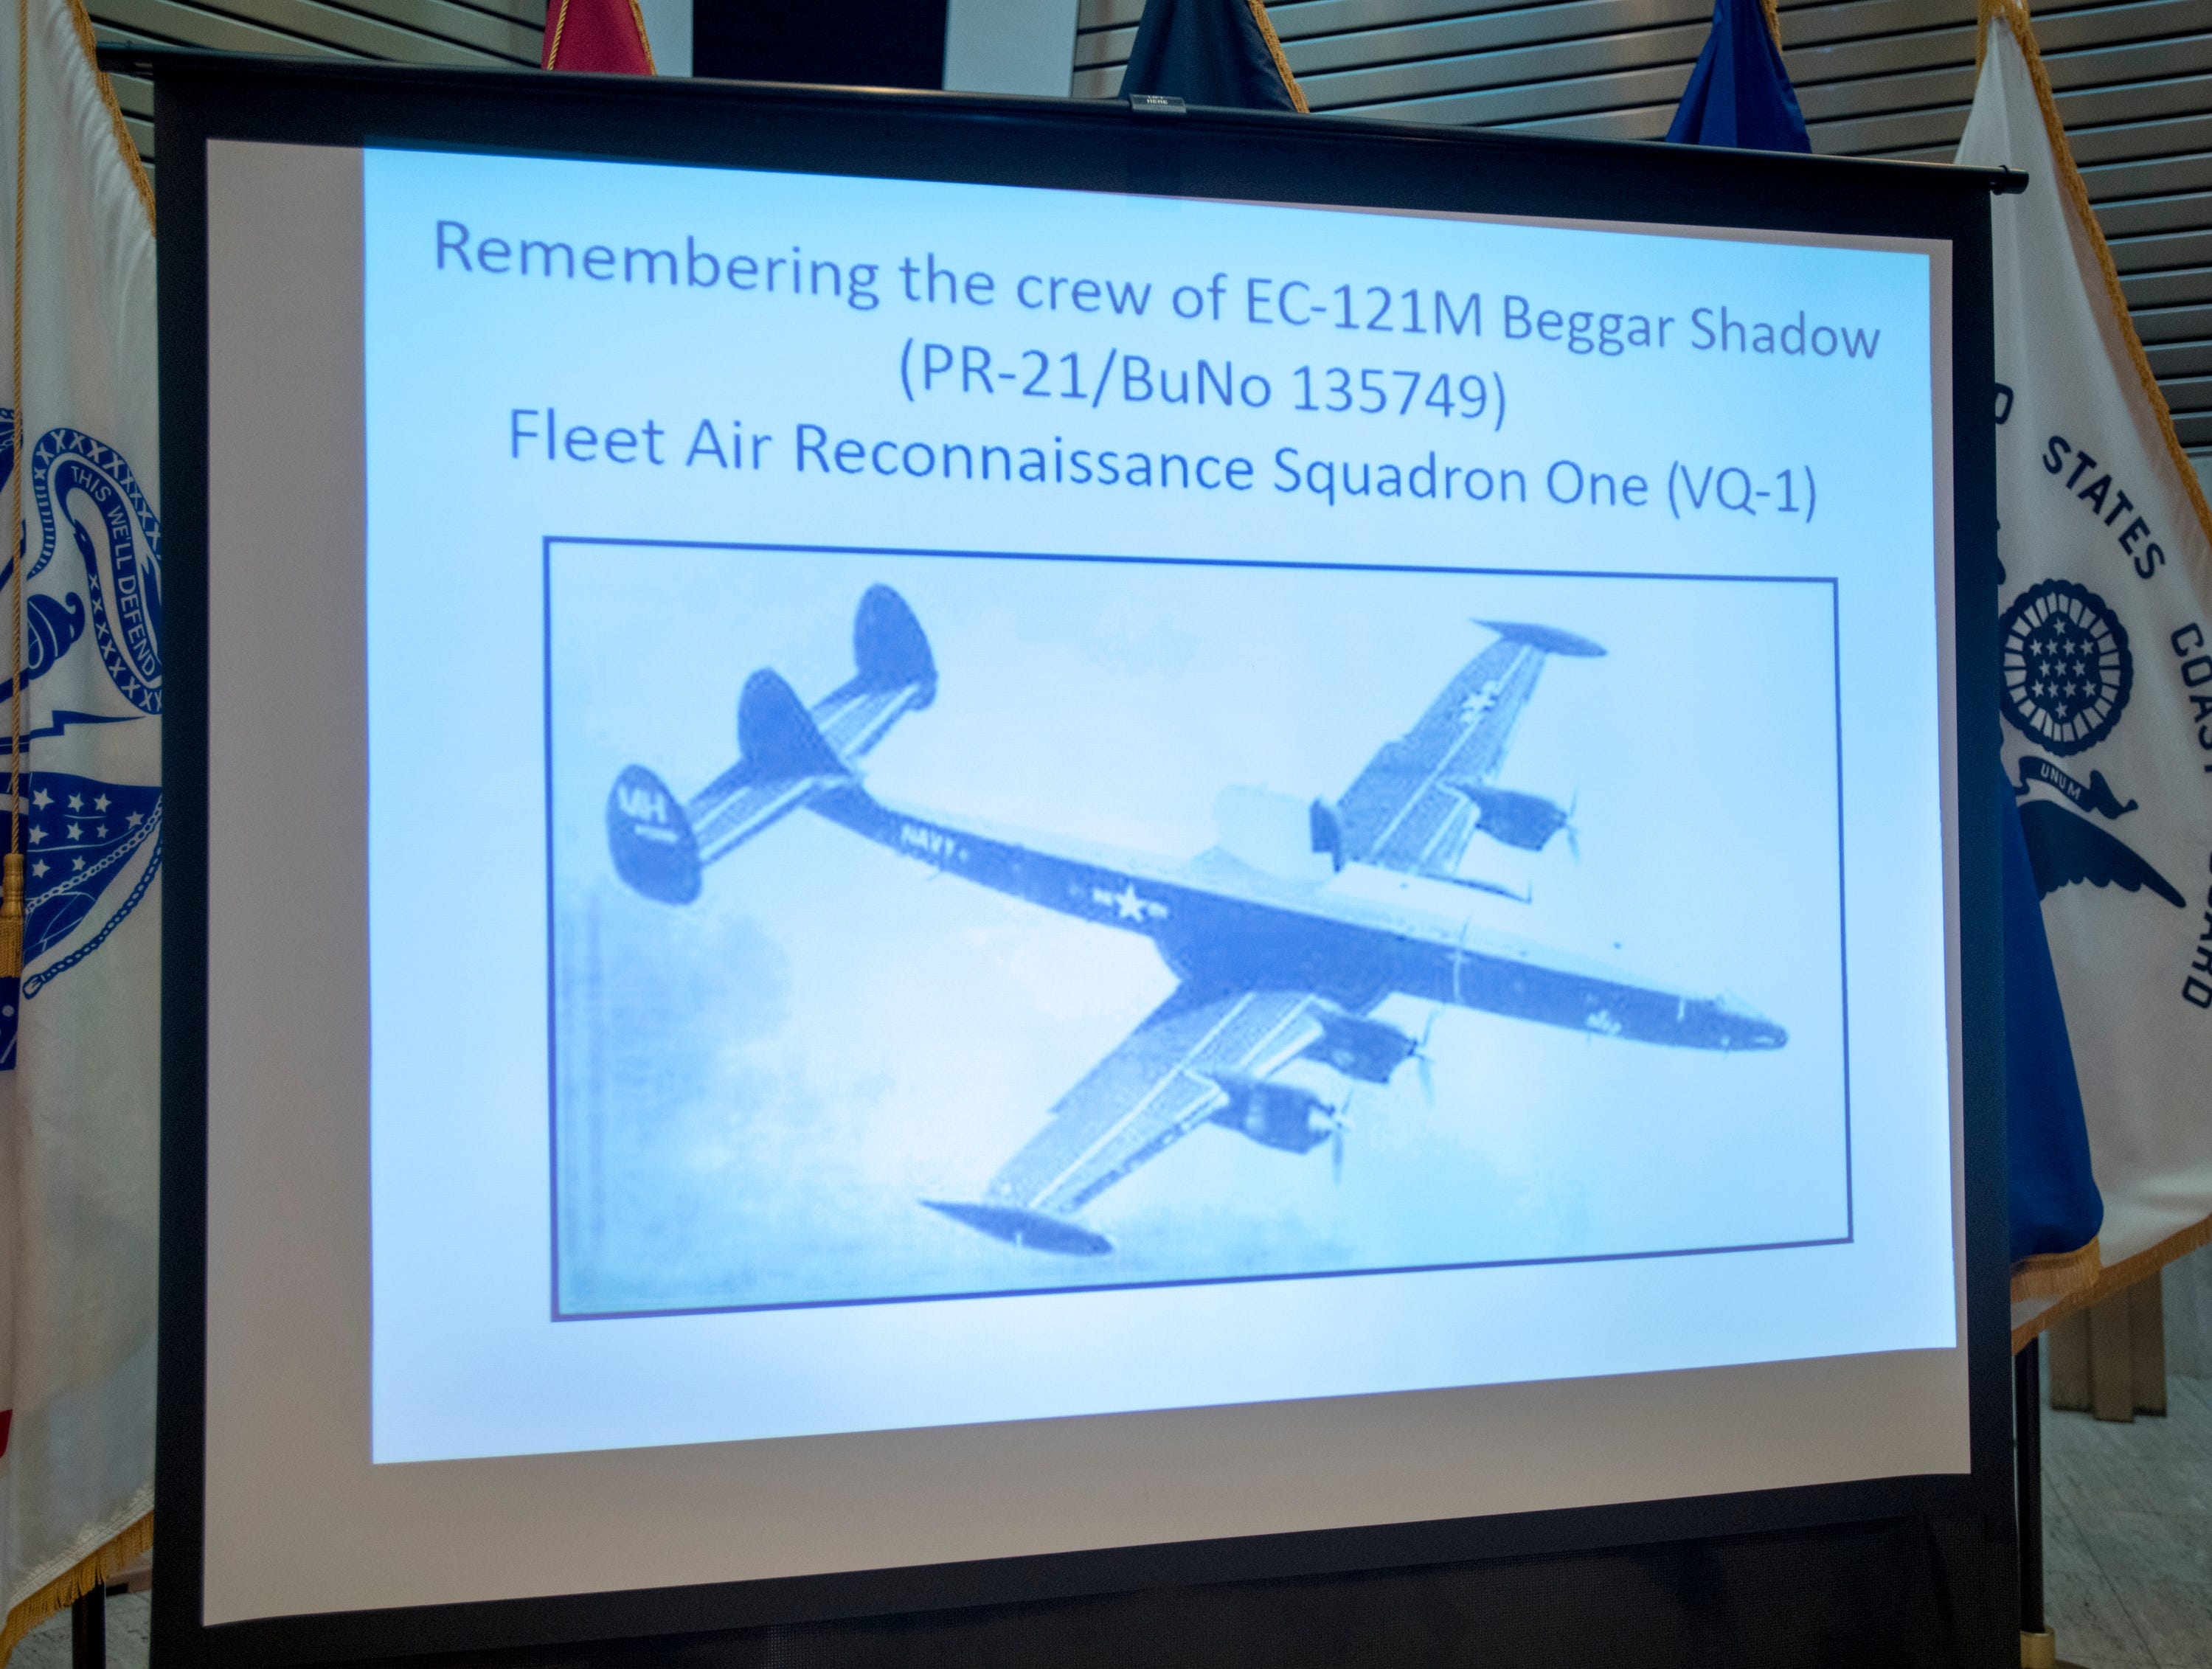 """A memorial service was held for the fallen crew of the EC-121M """"Beggar Shadow"""" reconnaissance plane at Corry Station in Pensacola on Monday, April 15, 2019.  The Navy EC-121M reconnaissance aircraft (PR-21/BuNo 135749) of Fleet Air Reconnaissance Squadron One (VQ-1) was shot down over the Sea of Japan by North Korea on Monday, April 14,1969.  All 31 crewmembers were killed, including nine NAVSECGRU cryptologists."""